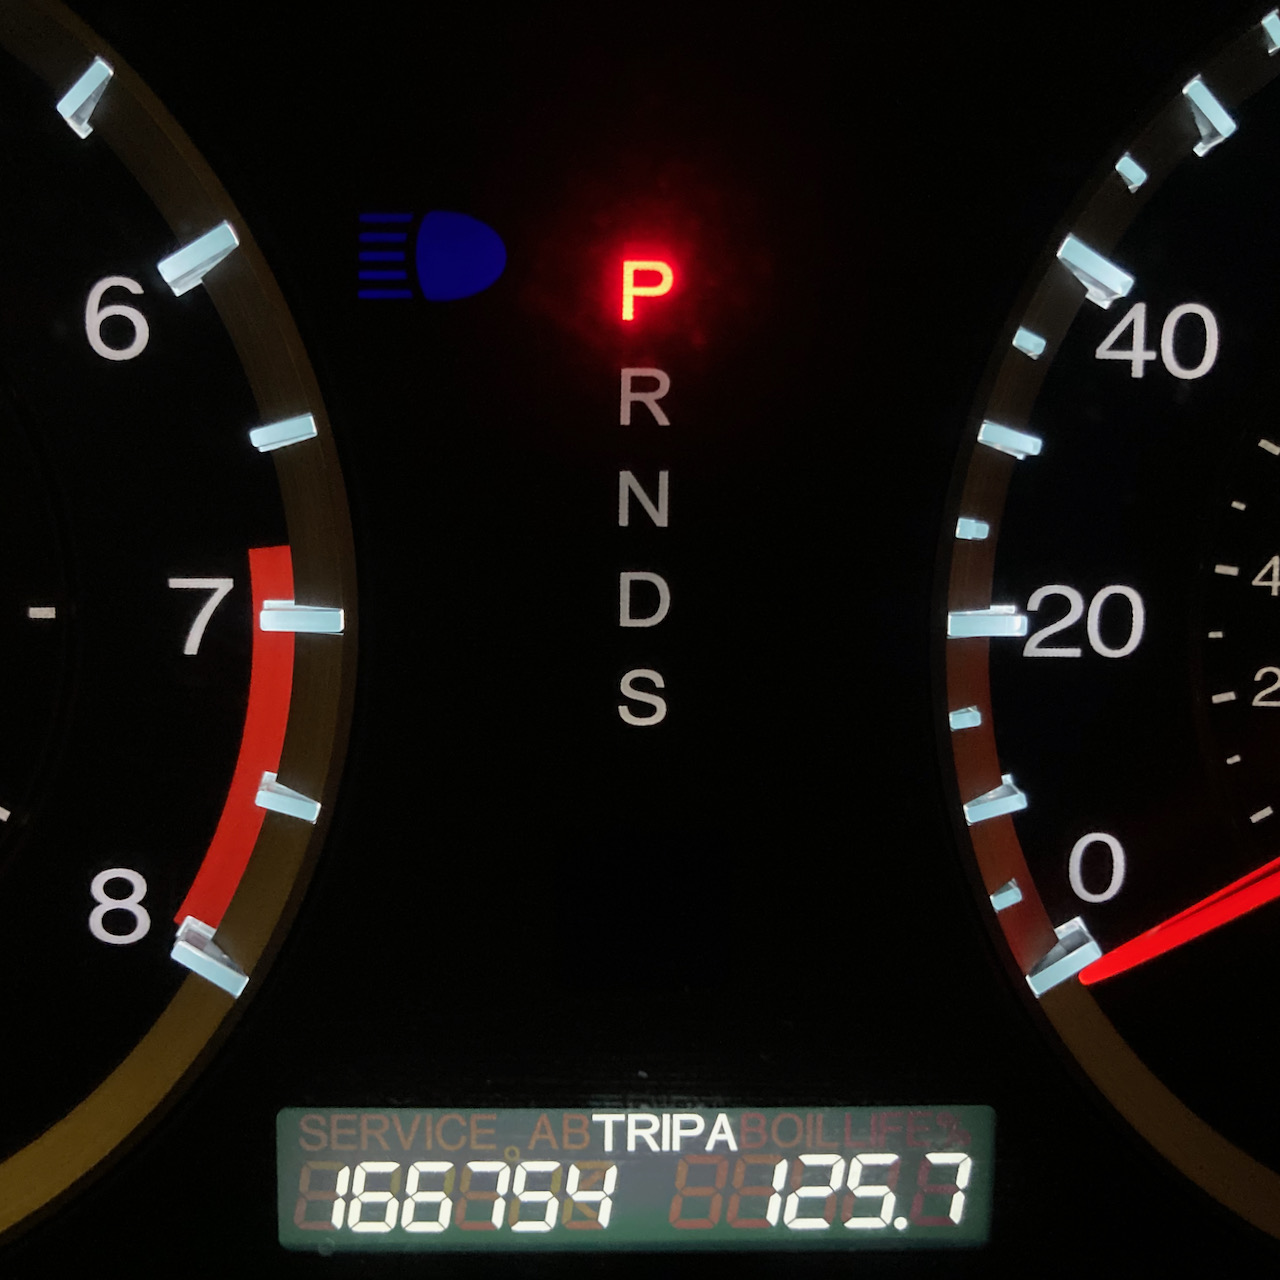 Car odometer reading 166754 TRIP A 125.7